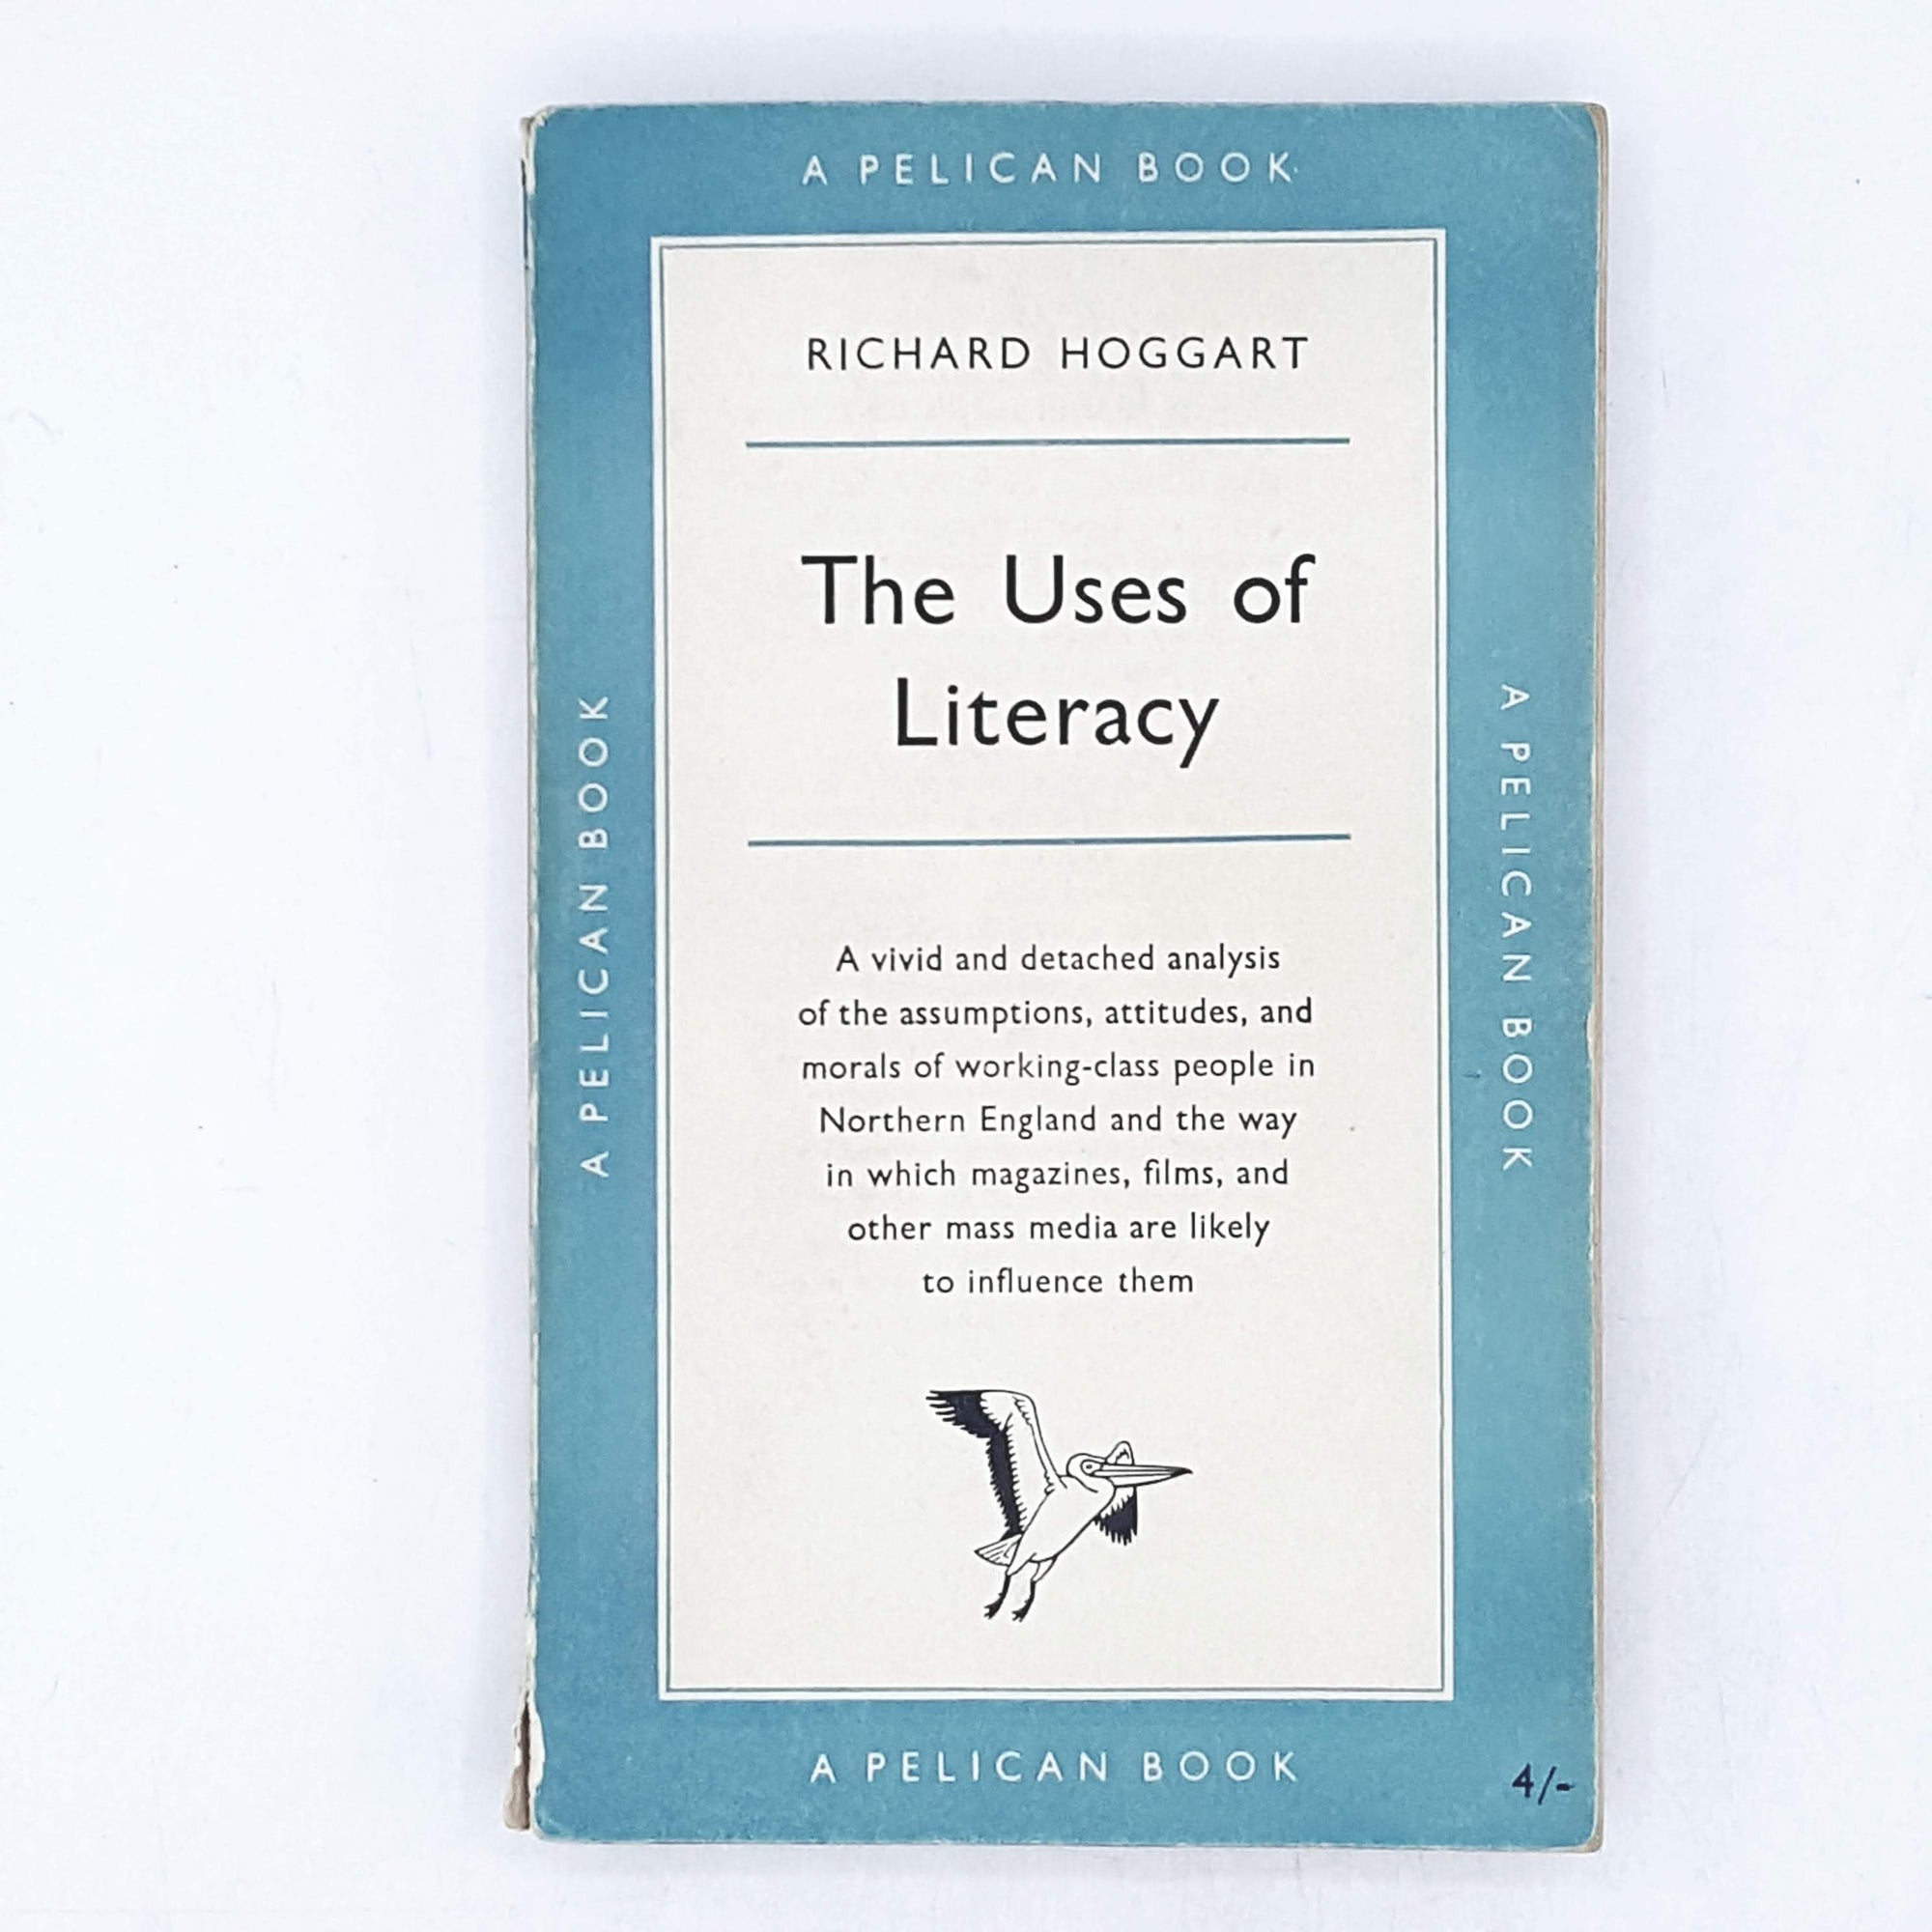 The Uses of Literacy by Richard Hoggart 1958